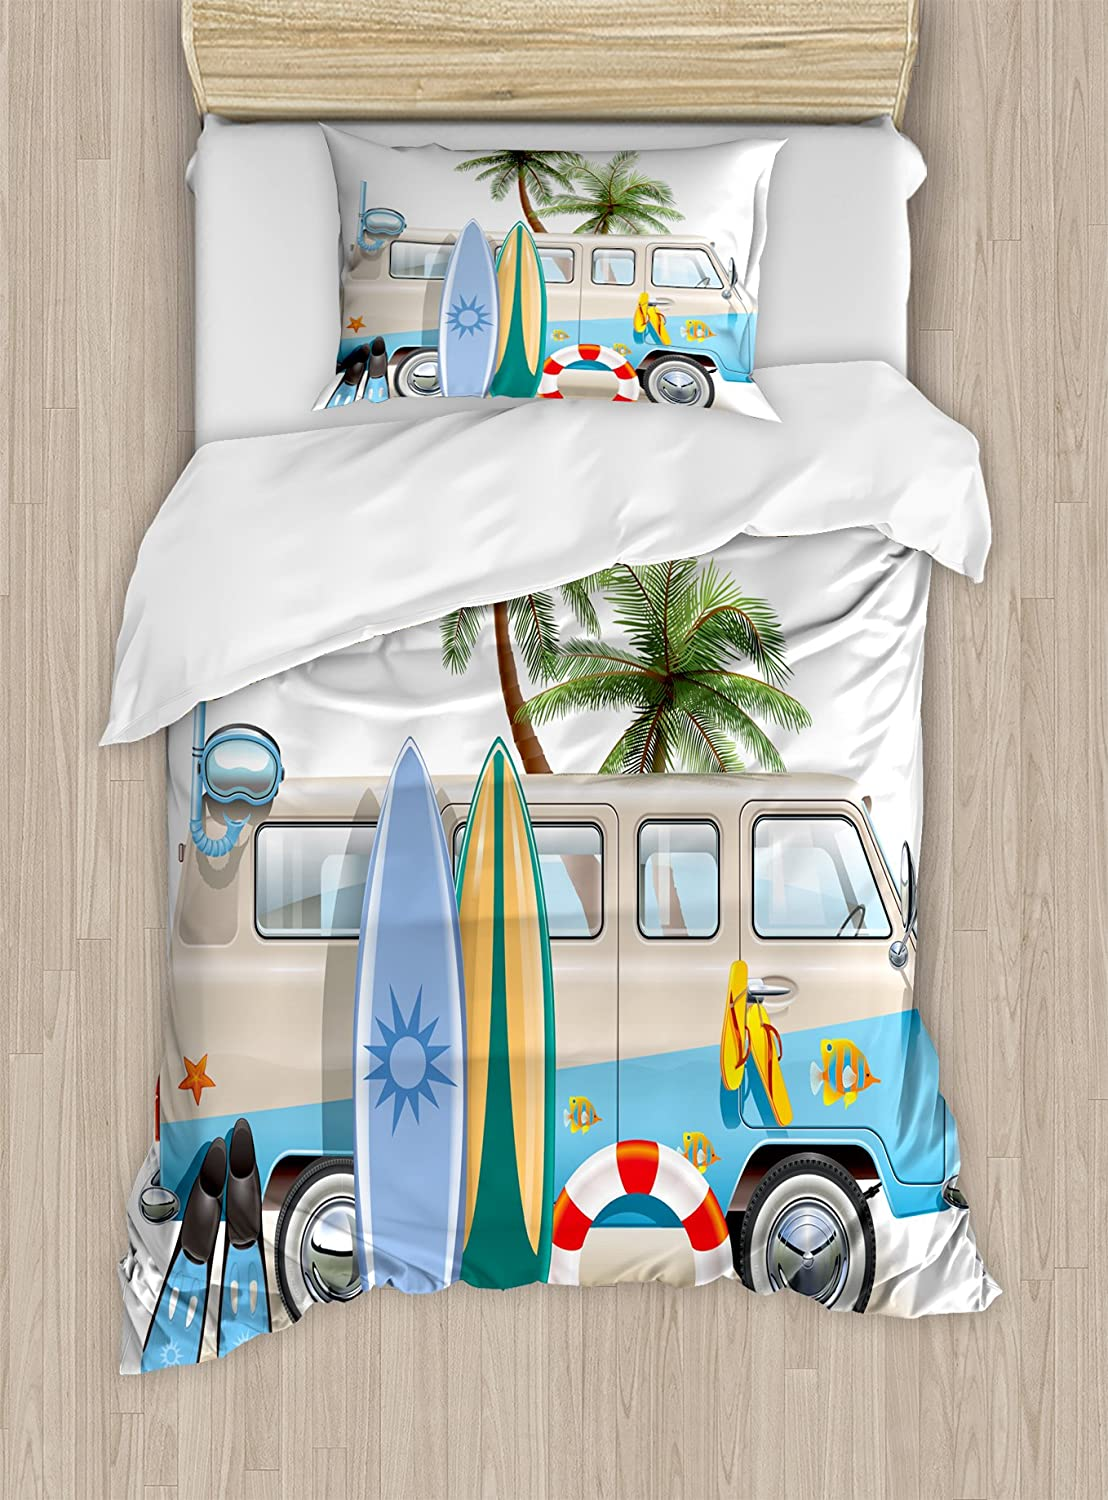 Ambesonne Surf Duvet Cover Set Twin Size, Surfing Weekend Concept with Diving Elements Fins Snorkeling and Van Trip Relax Peace, Decorative 2 Piece Bedding Set with 1 Pillow Sham, Multicolor